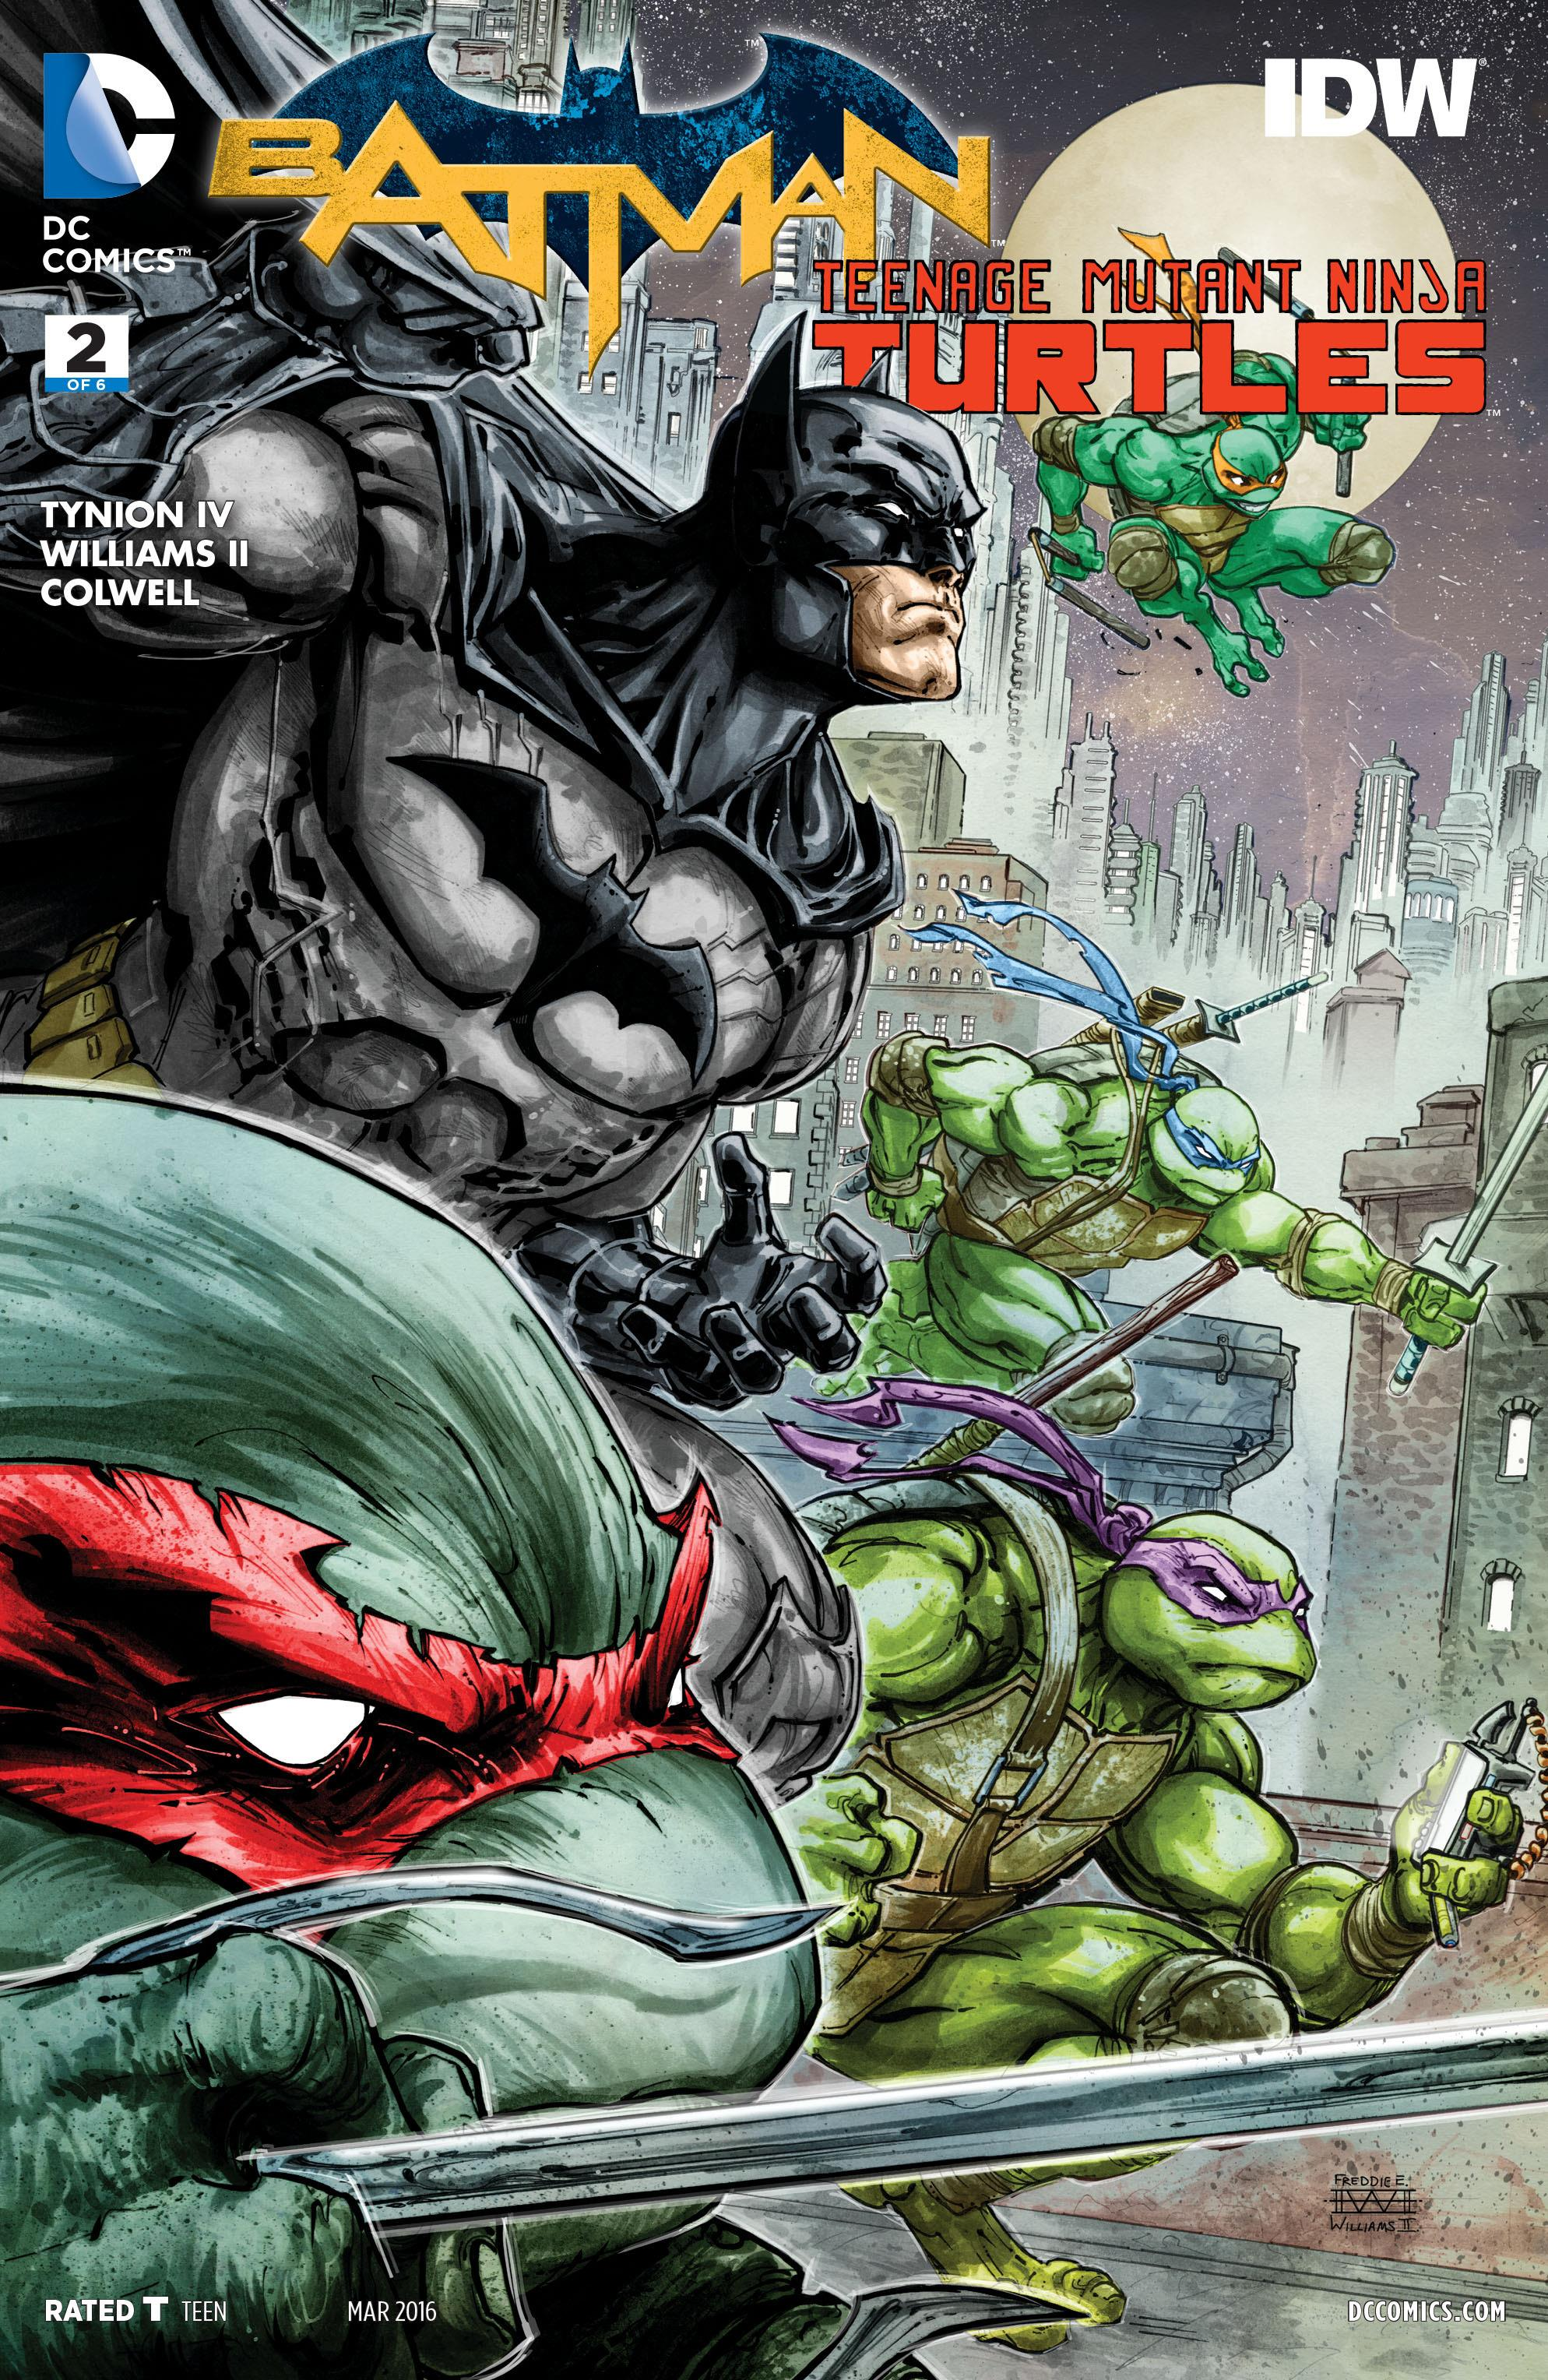 COMIC REVIEW: Batman / Teenage Mutant Ninja Turtles #2